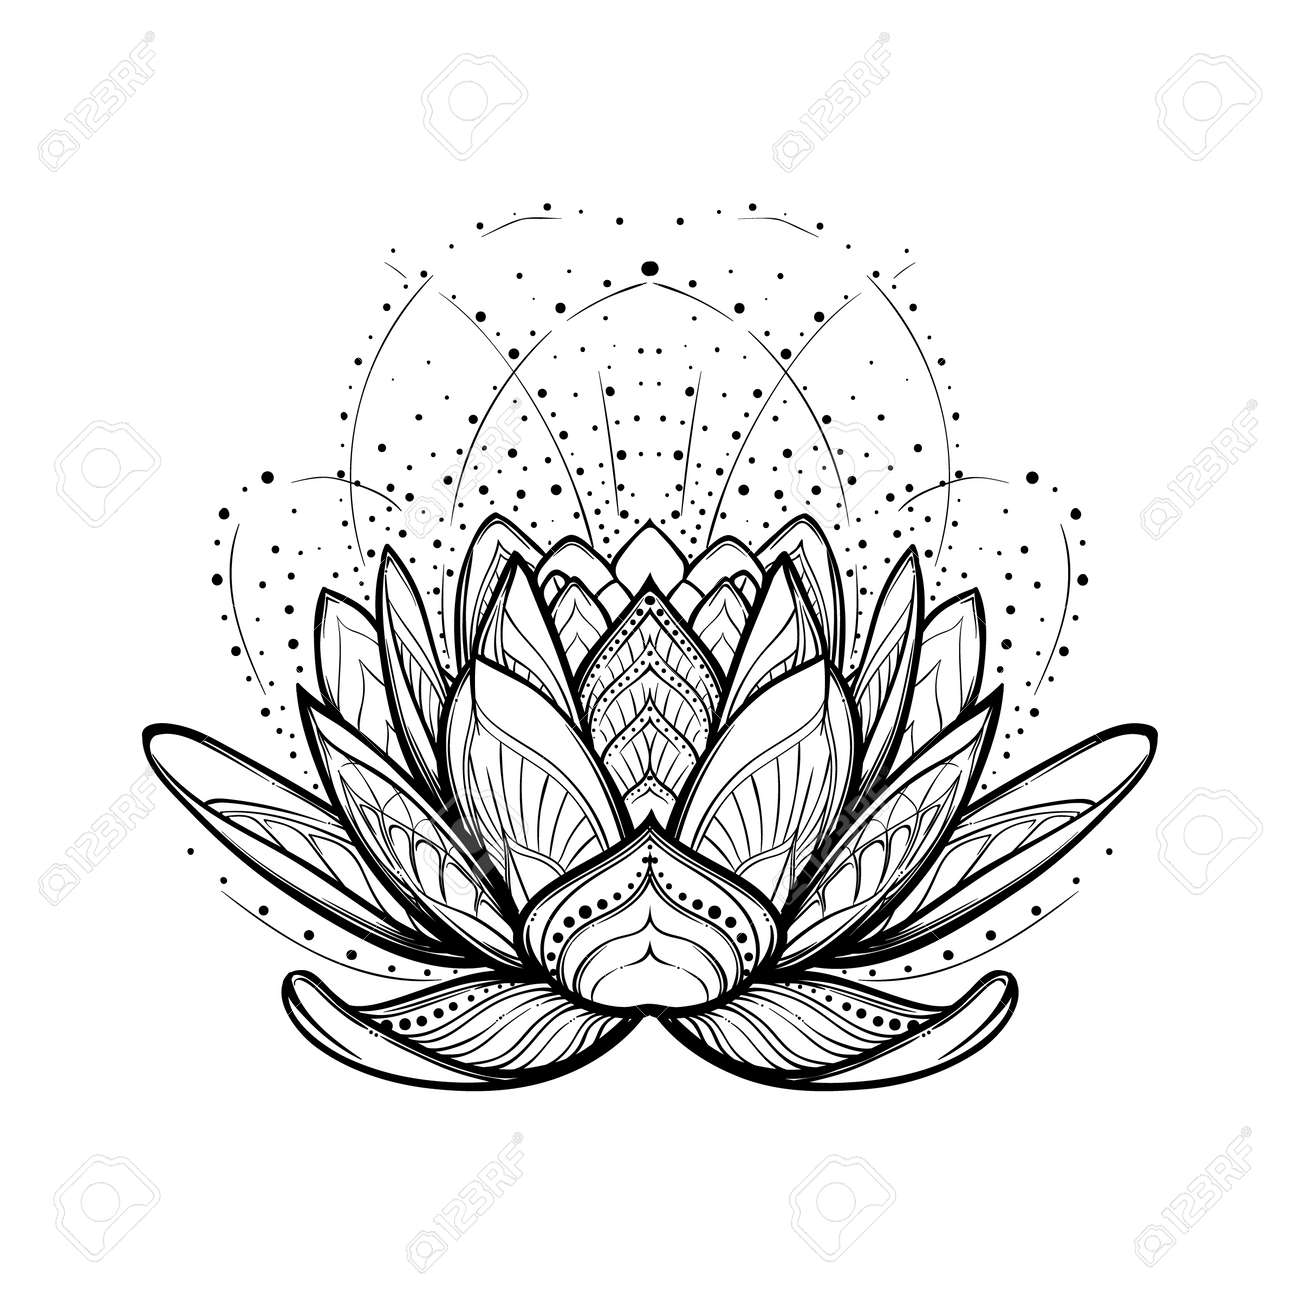 Lotus flower intricate stylized linear drawing isolated on white lotus flower intricate stylized linear drawing isolated on white background concept art for hindu dhlflorist Gallery